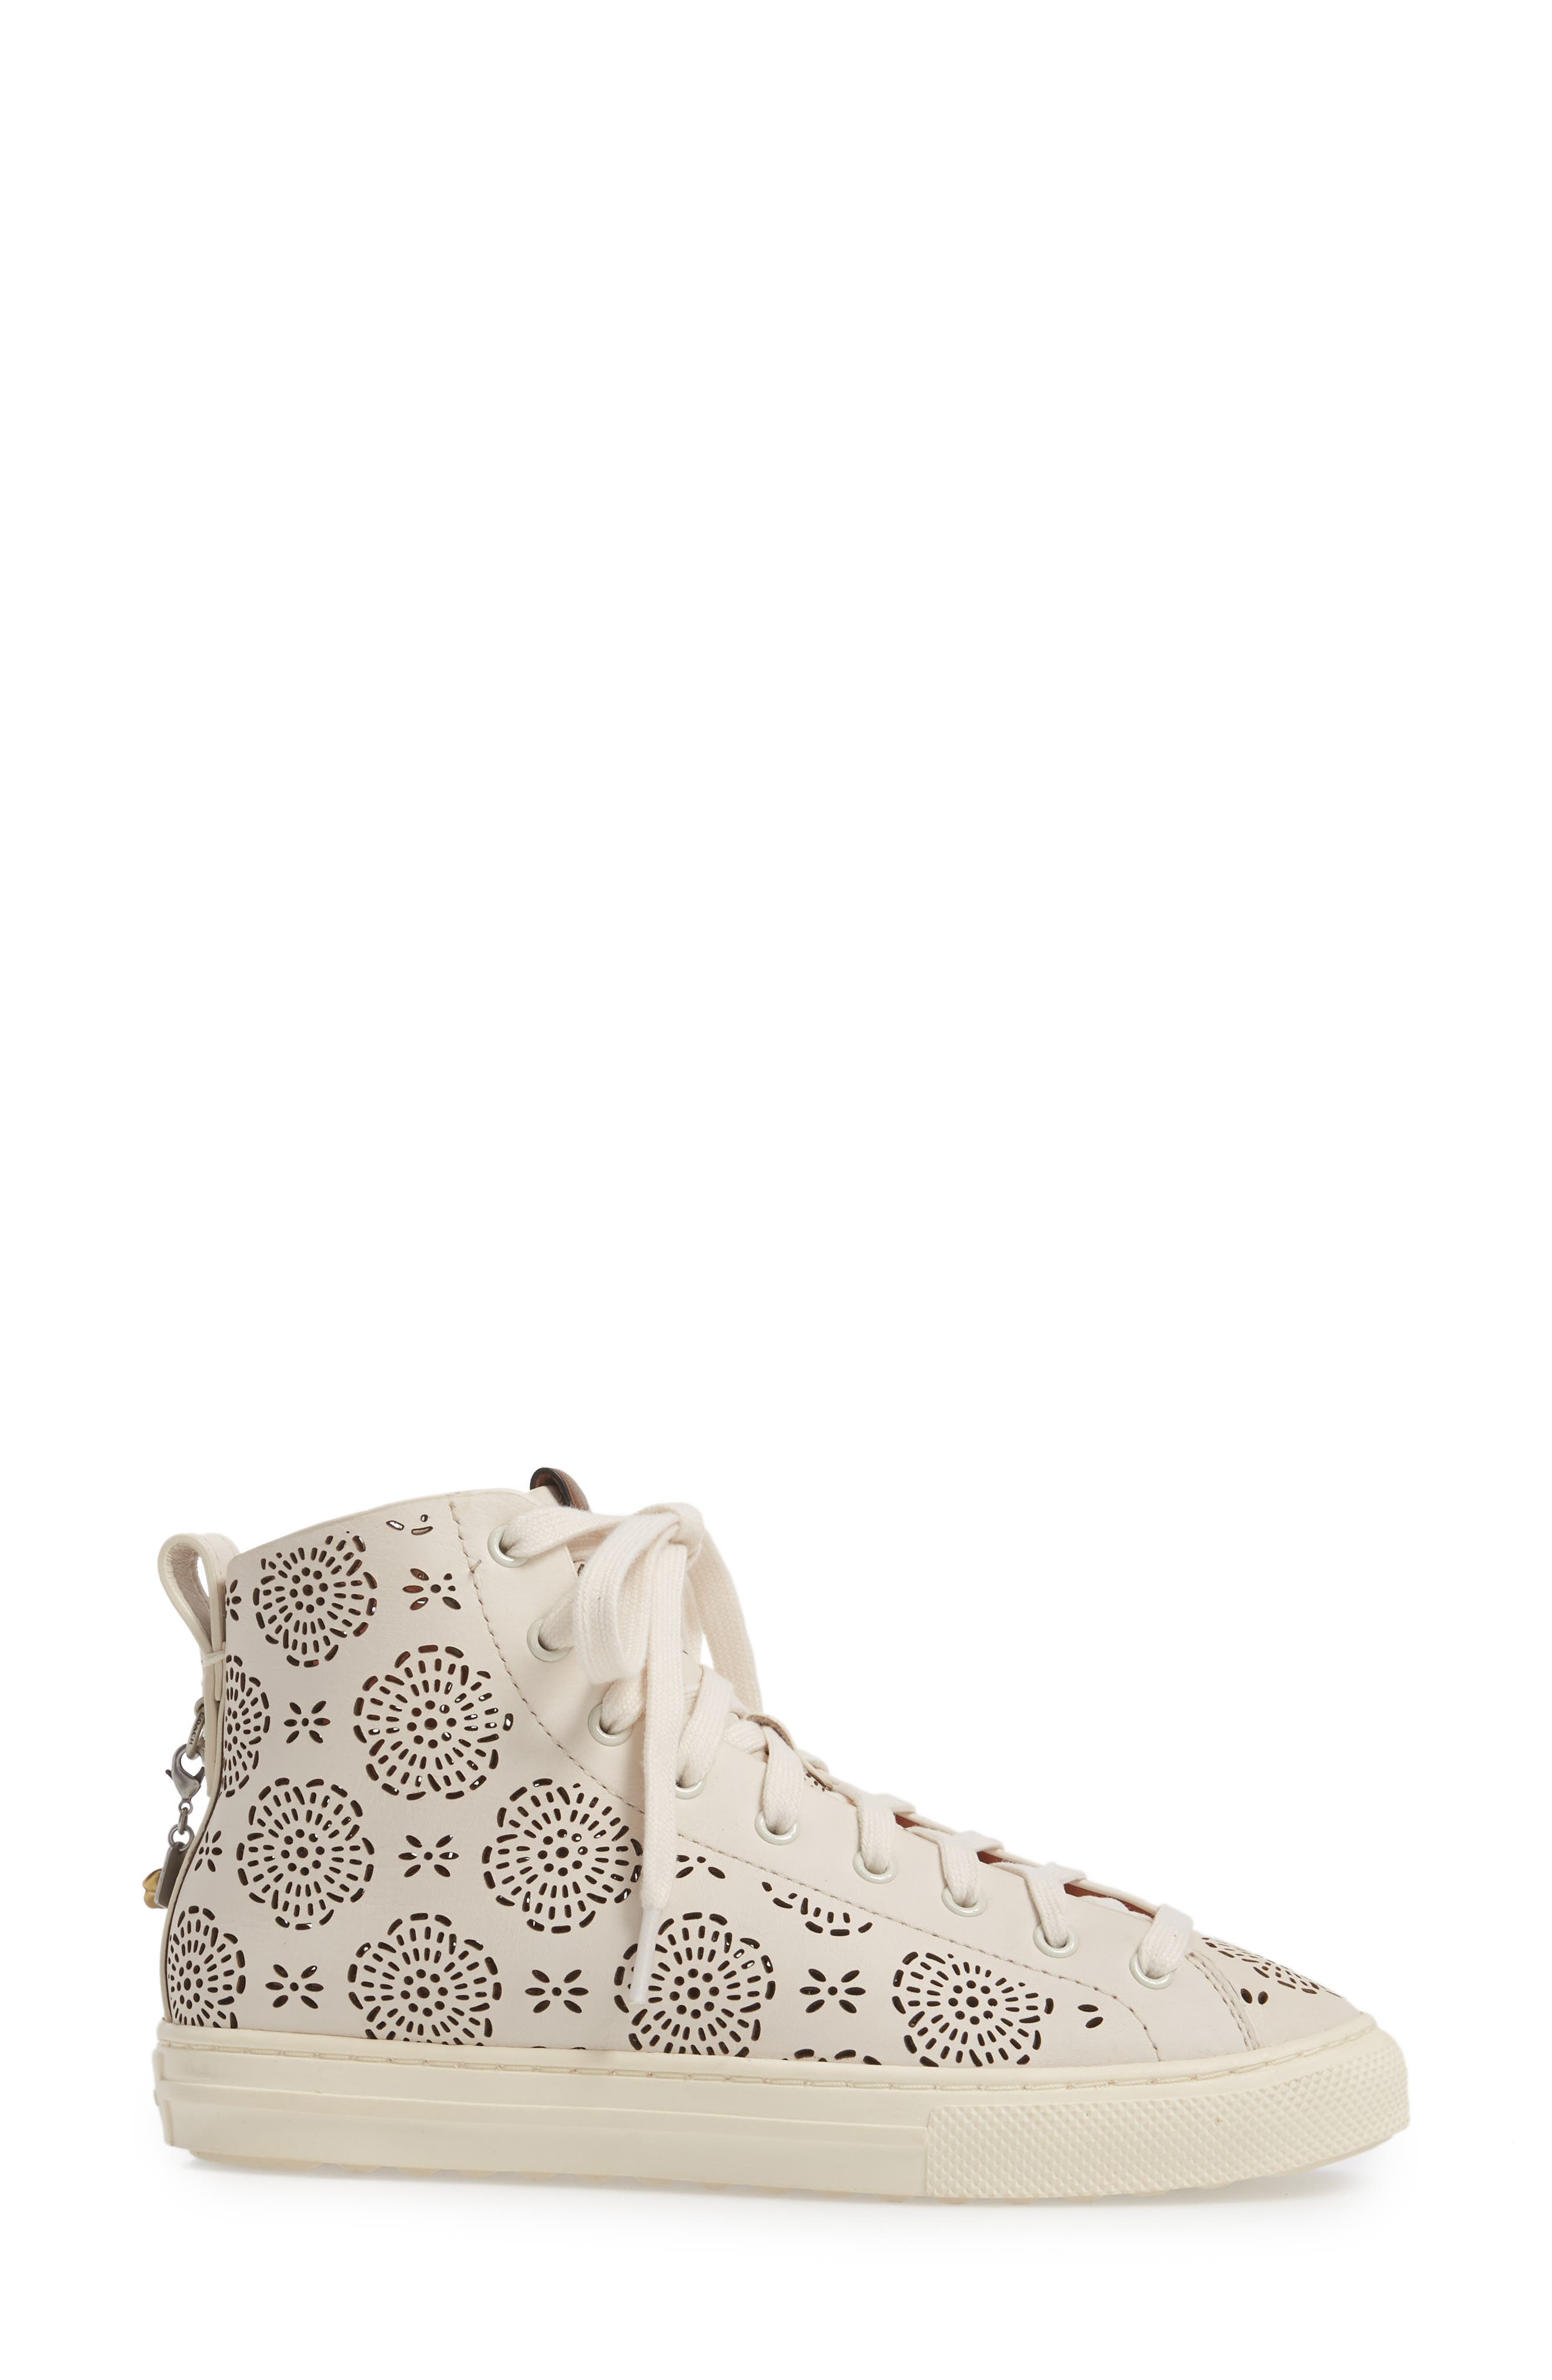 Tea Rose Cutout High Top Sneaker,                             Alternate thumbnail 3, color,                             115